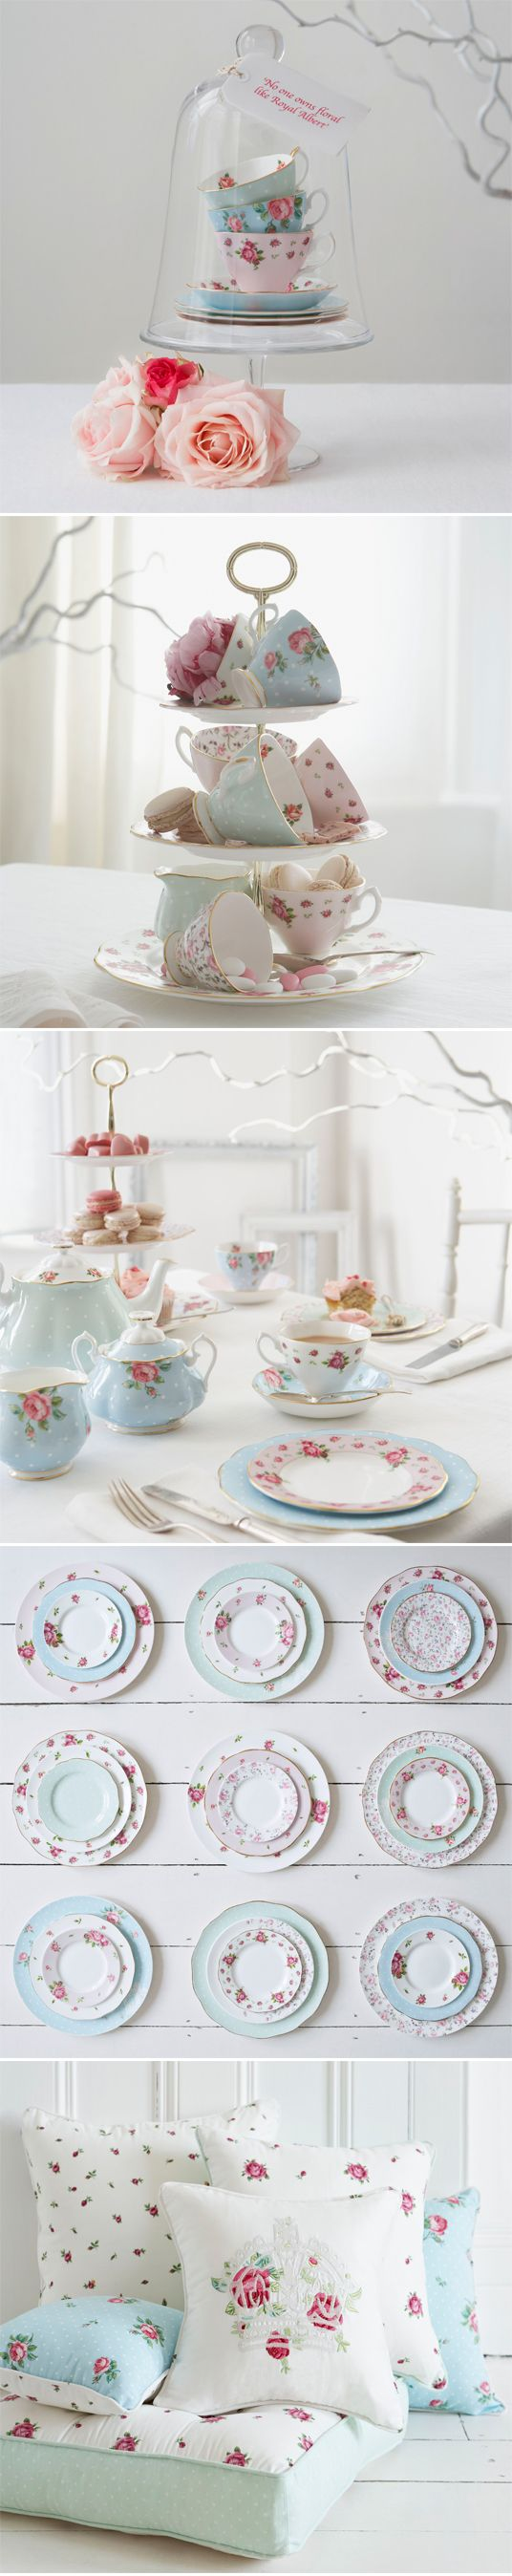 Royal Albert ... If only I could throw out all my old mugs & cups & just use pretty china, oh how happy I would be <3